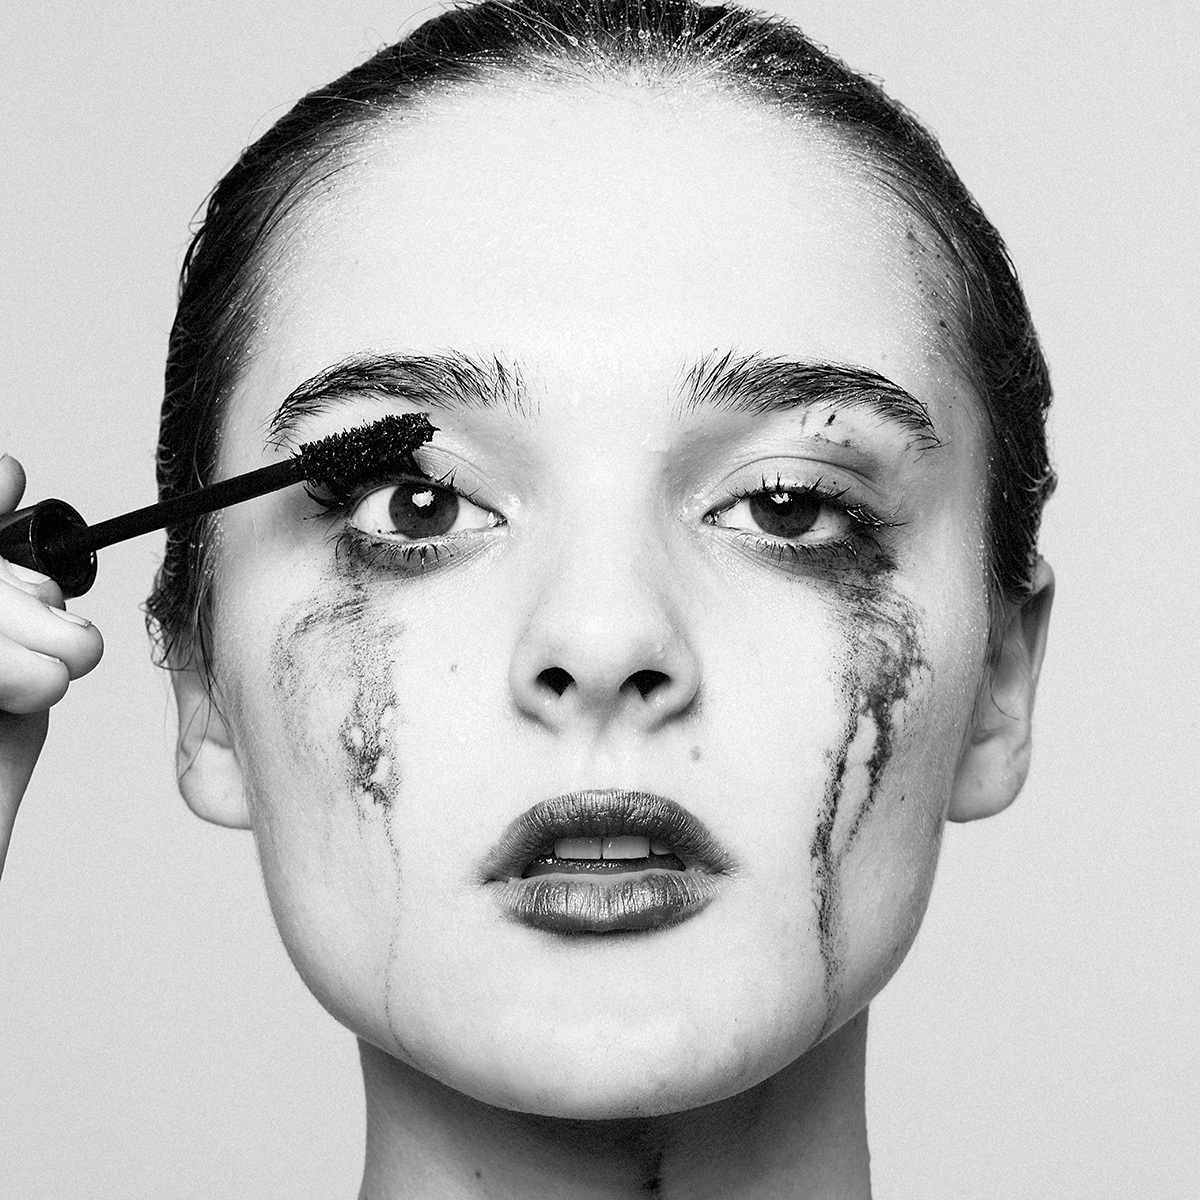 Mascara by Tyler Shields